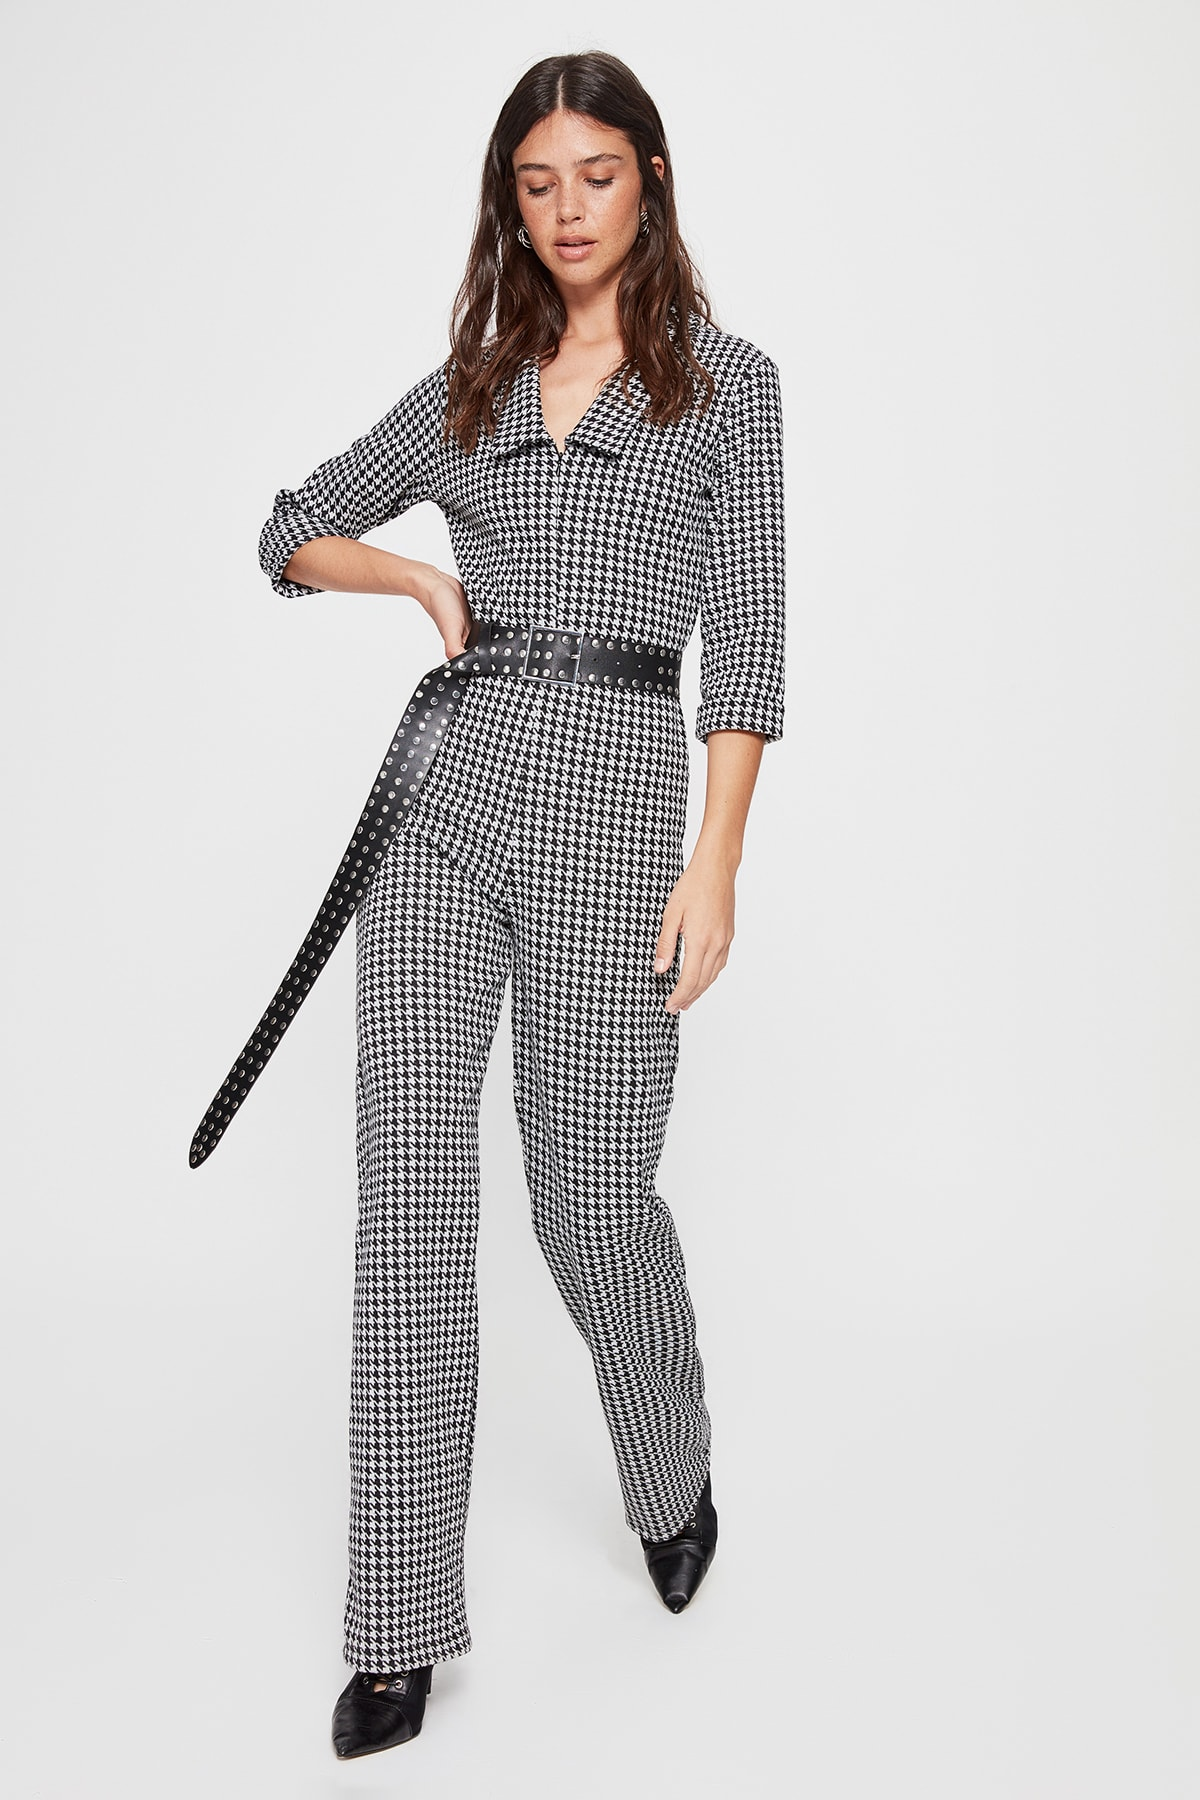 Trendyol Crowbar Patterned Knitted Jumpsuit TWOAW20TU0089